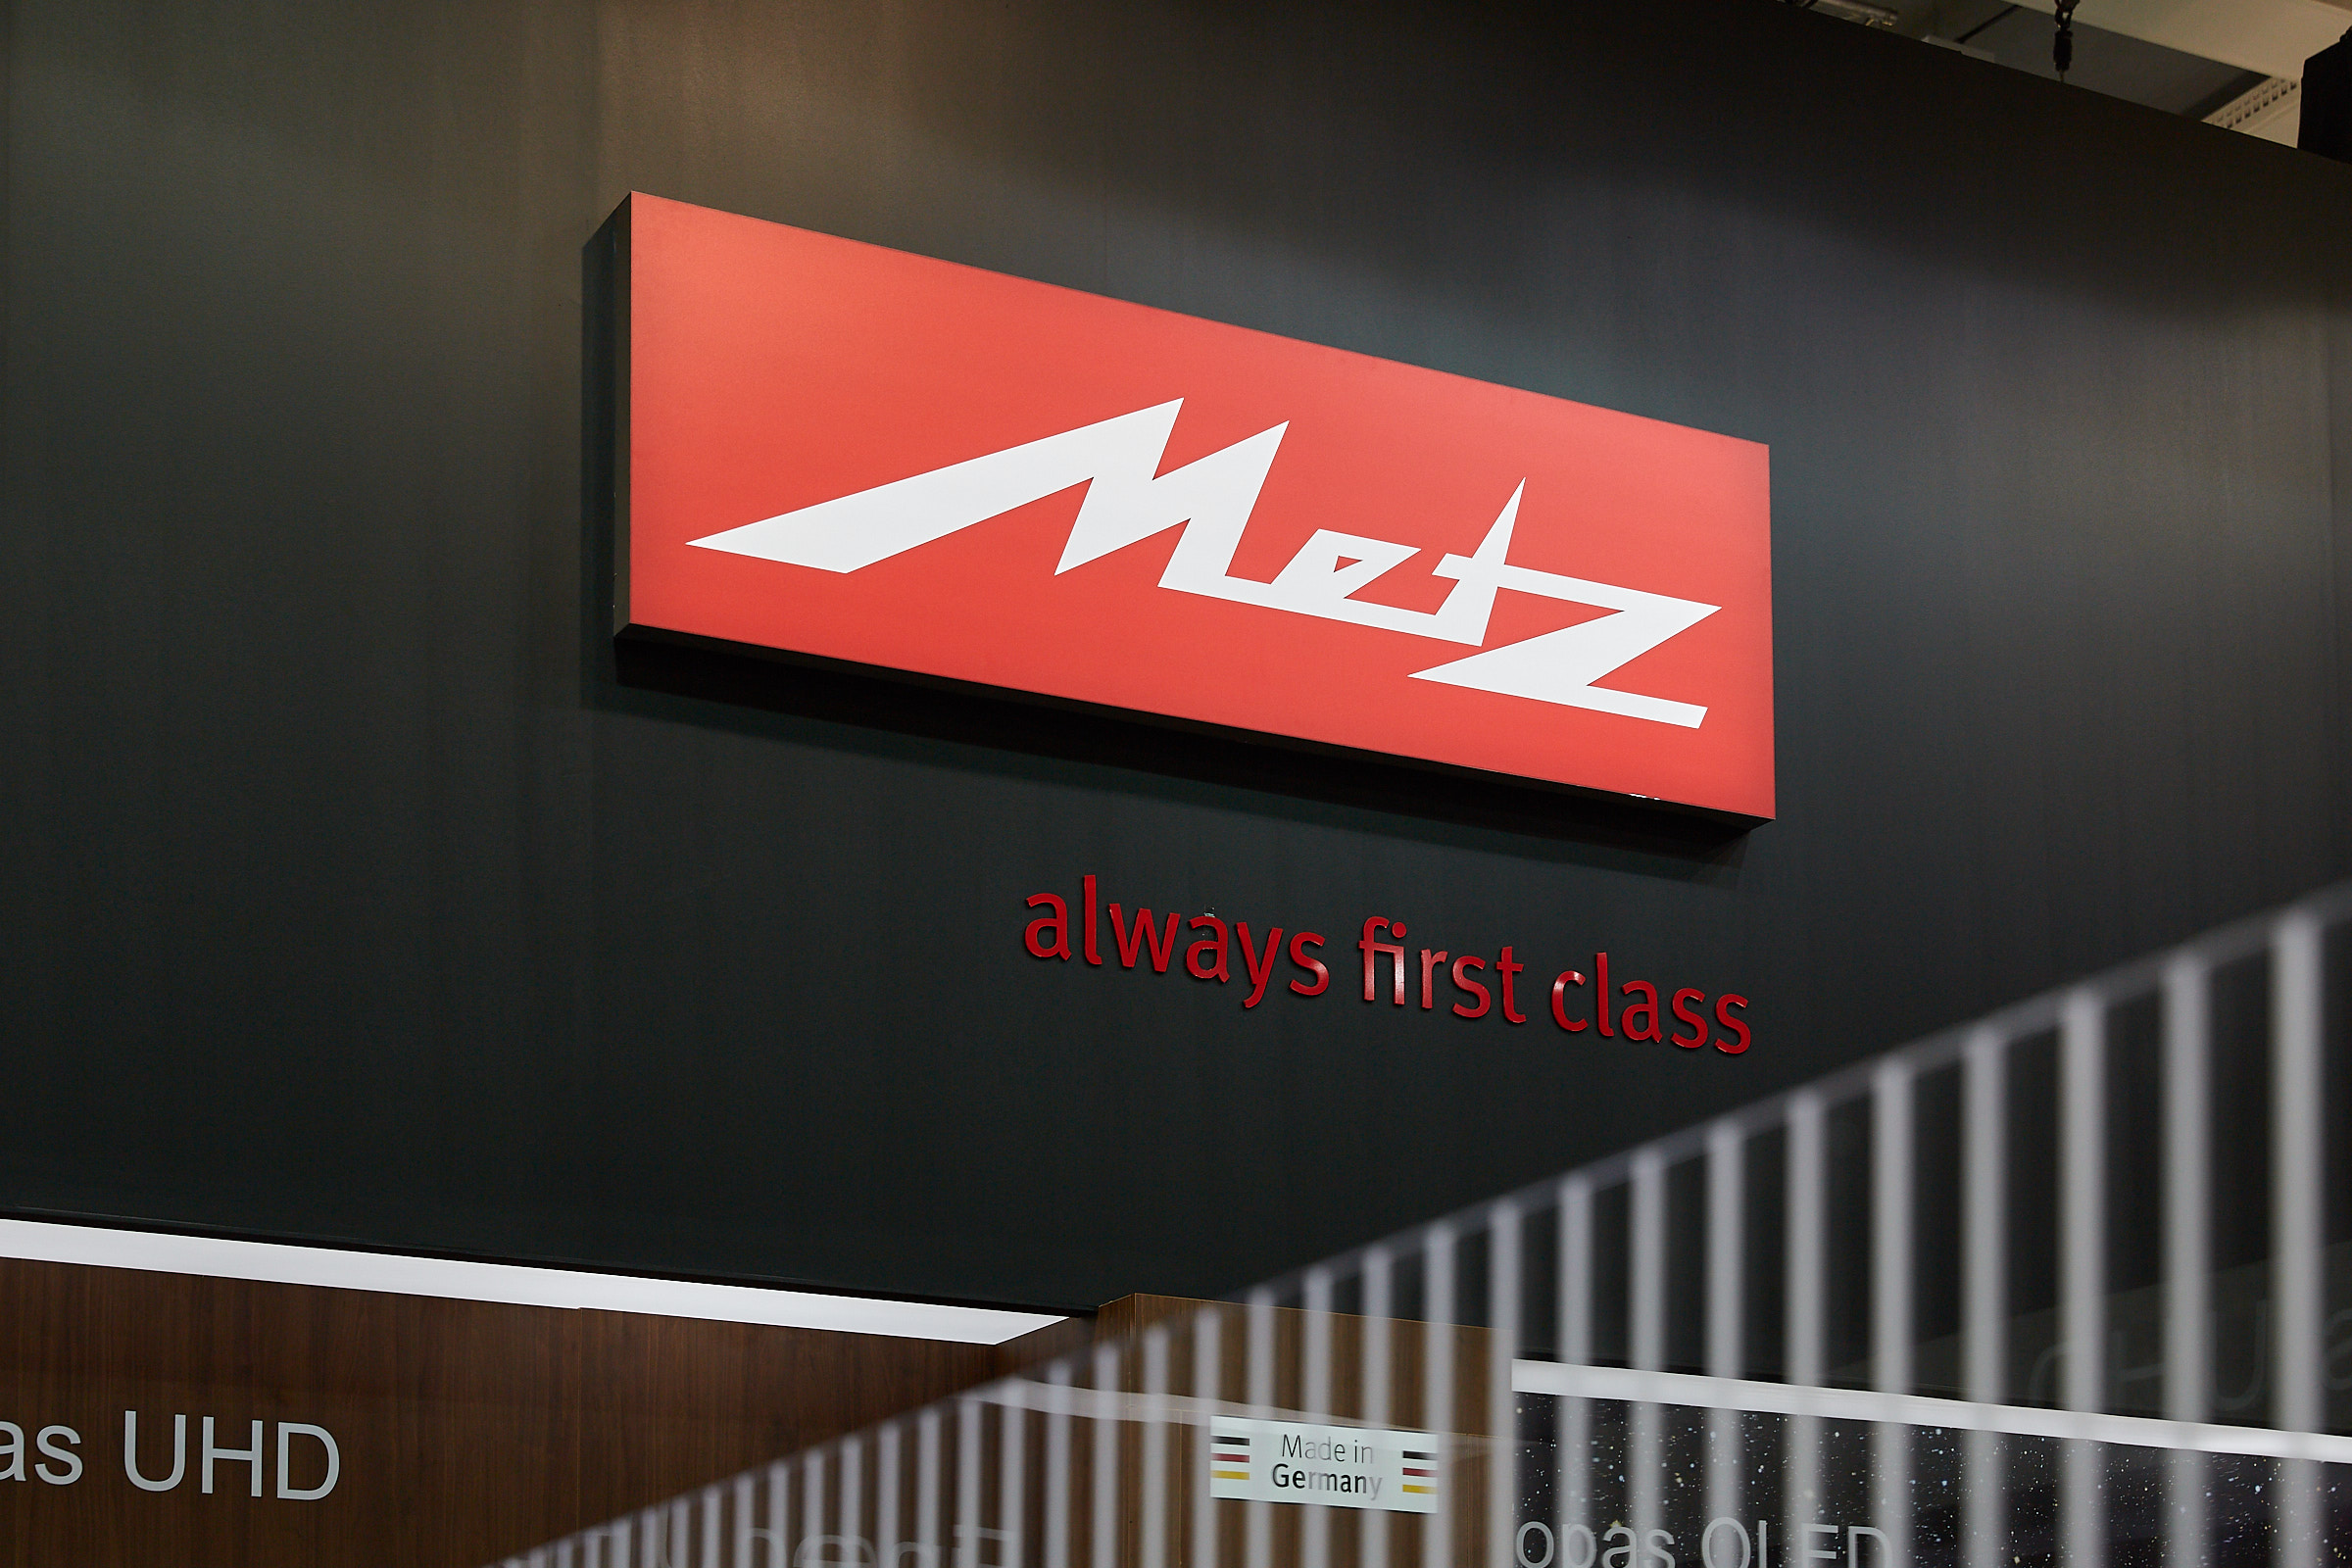 Metz Classic Plus X Award - Beste TV-Marke 2019